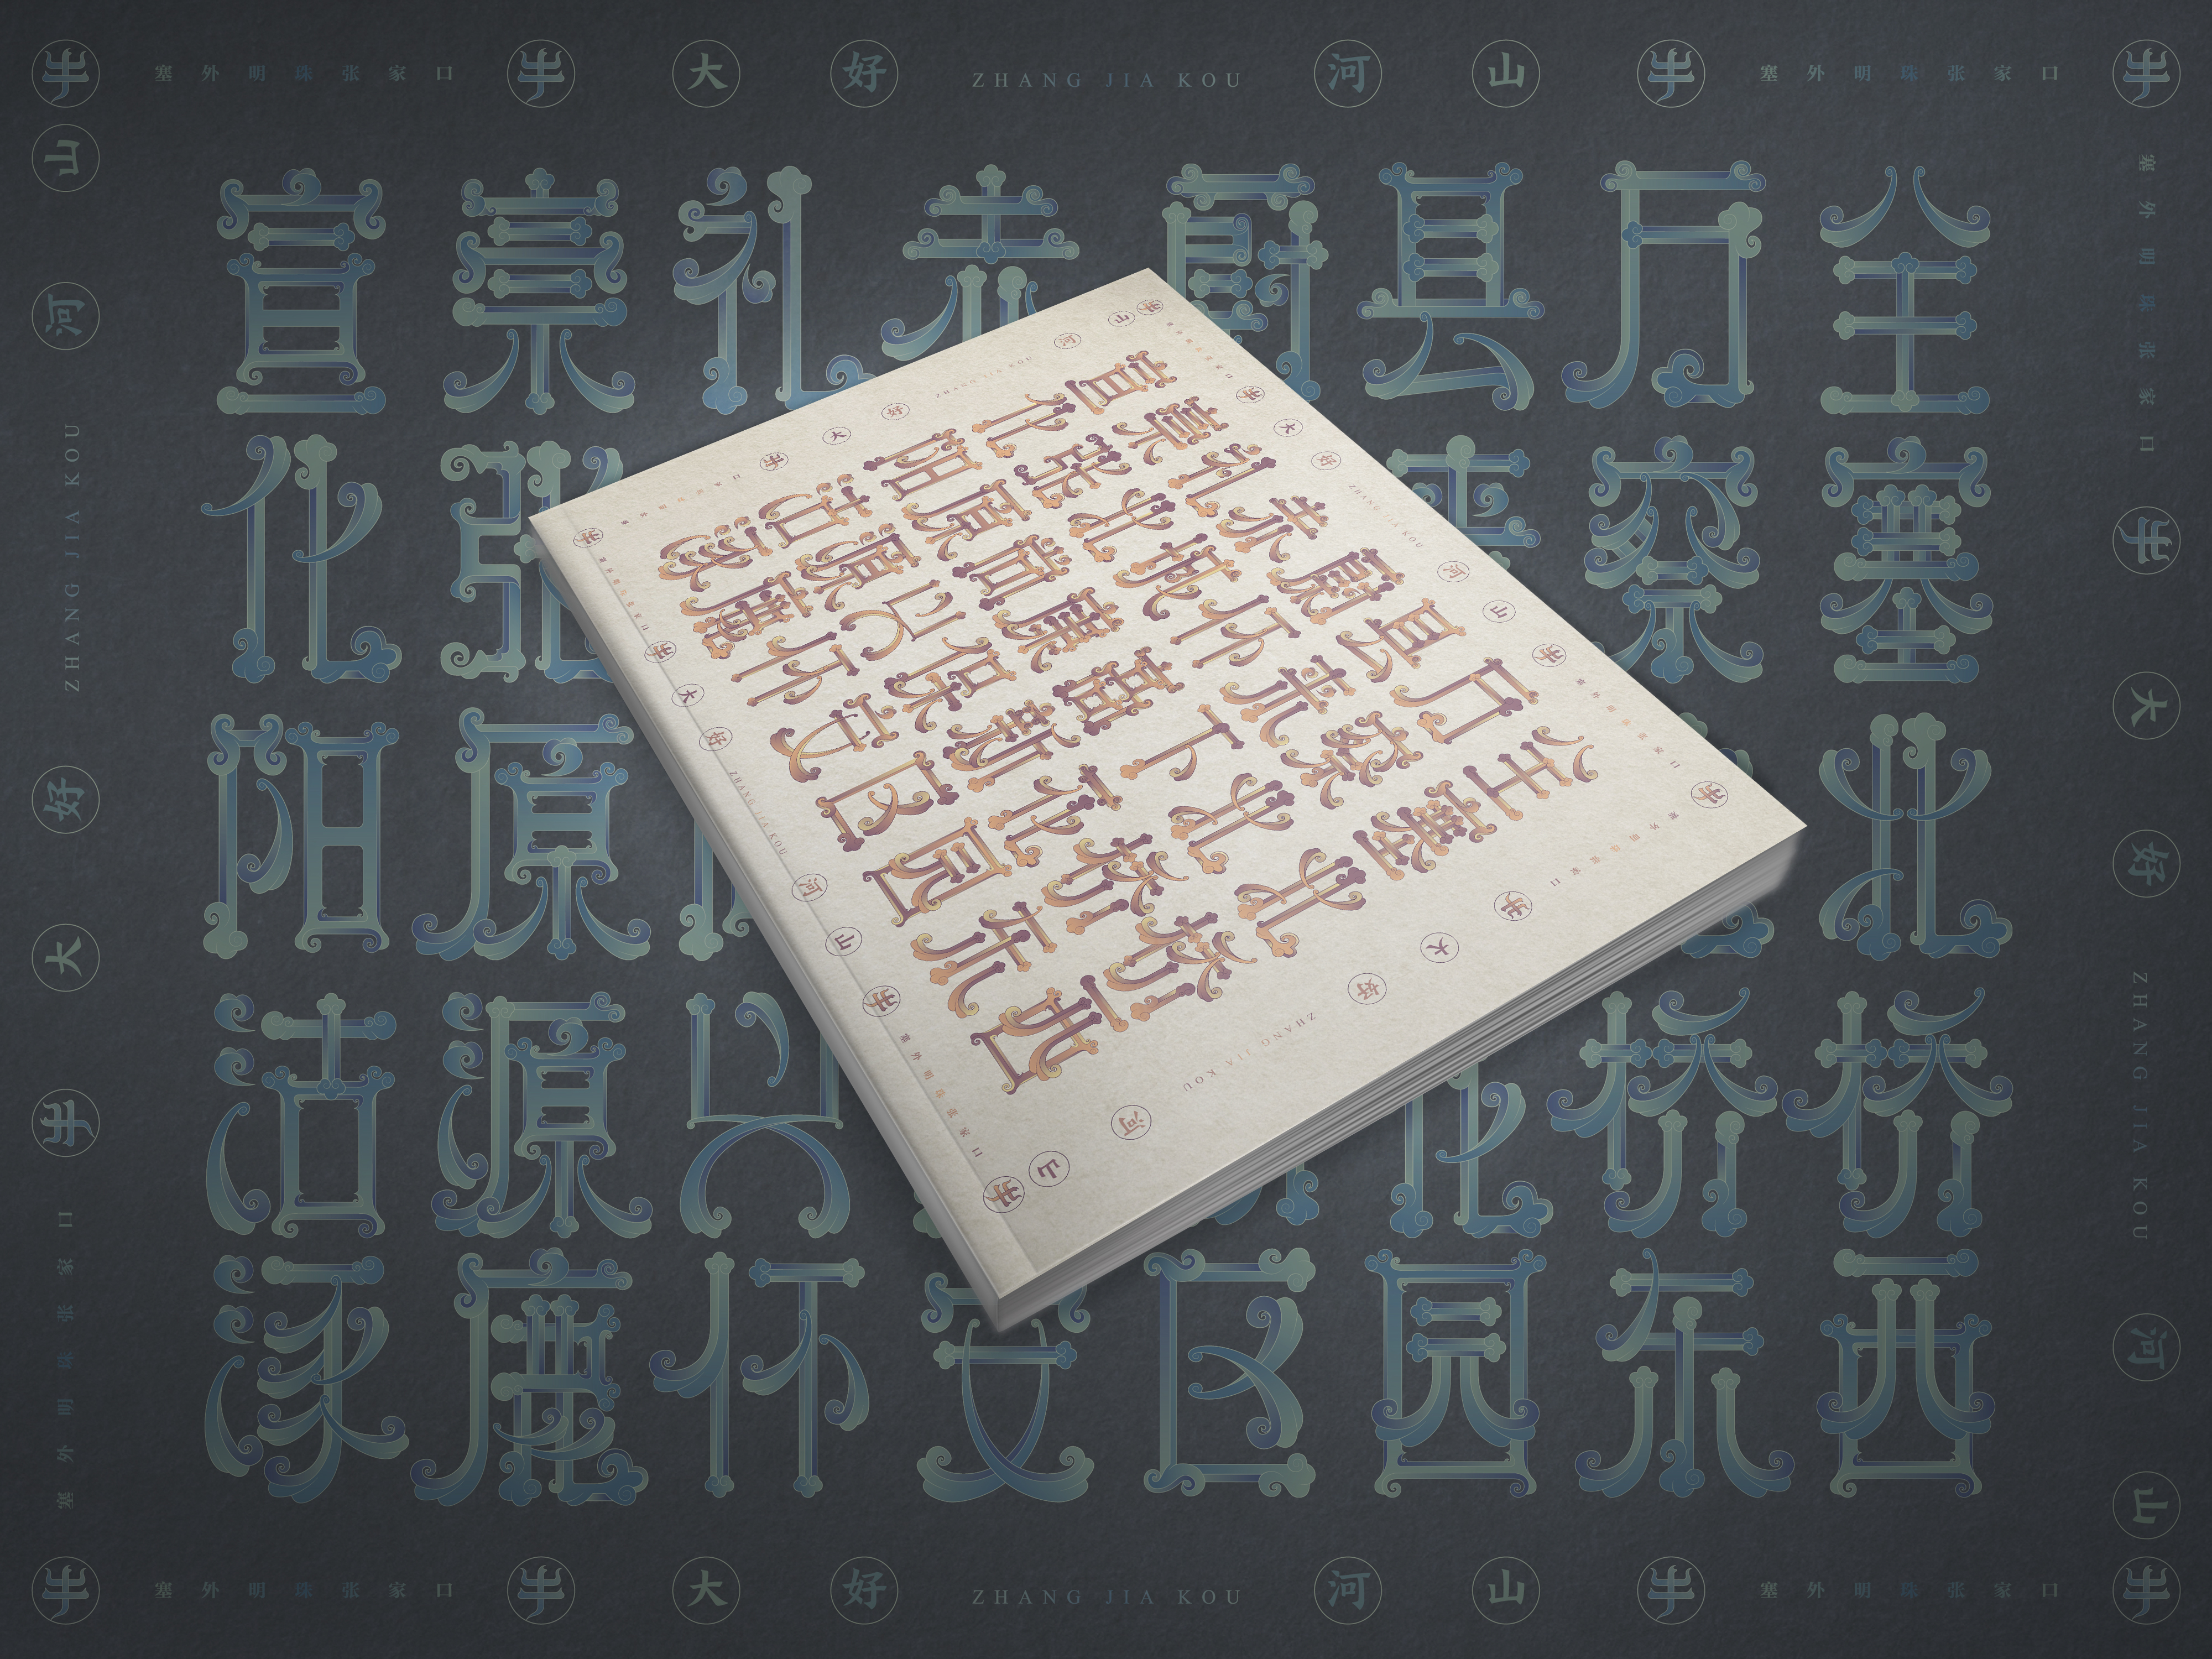 The third episode of Zhangjiakou place name font design ended